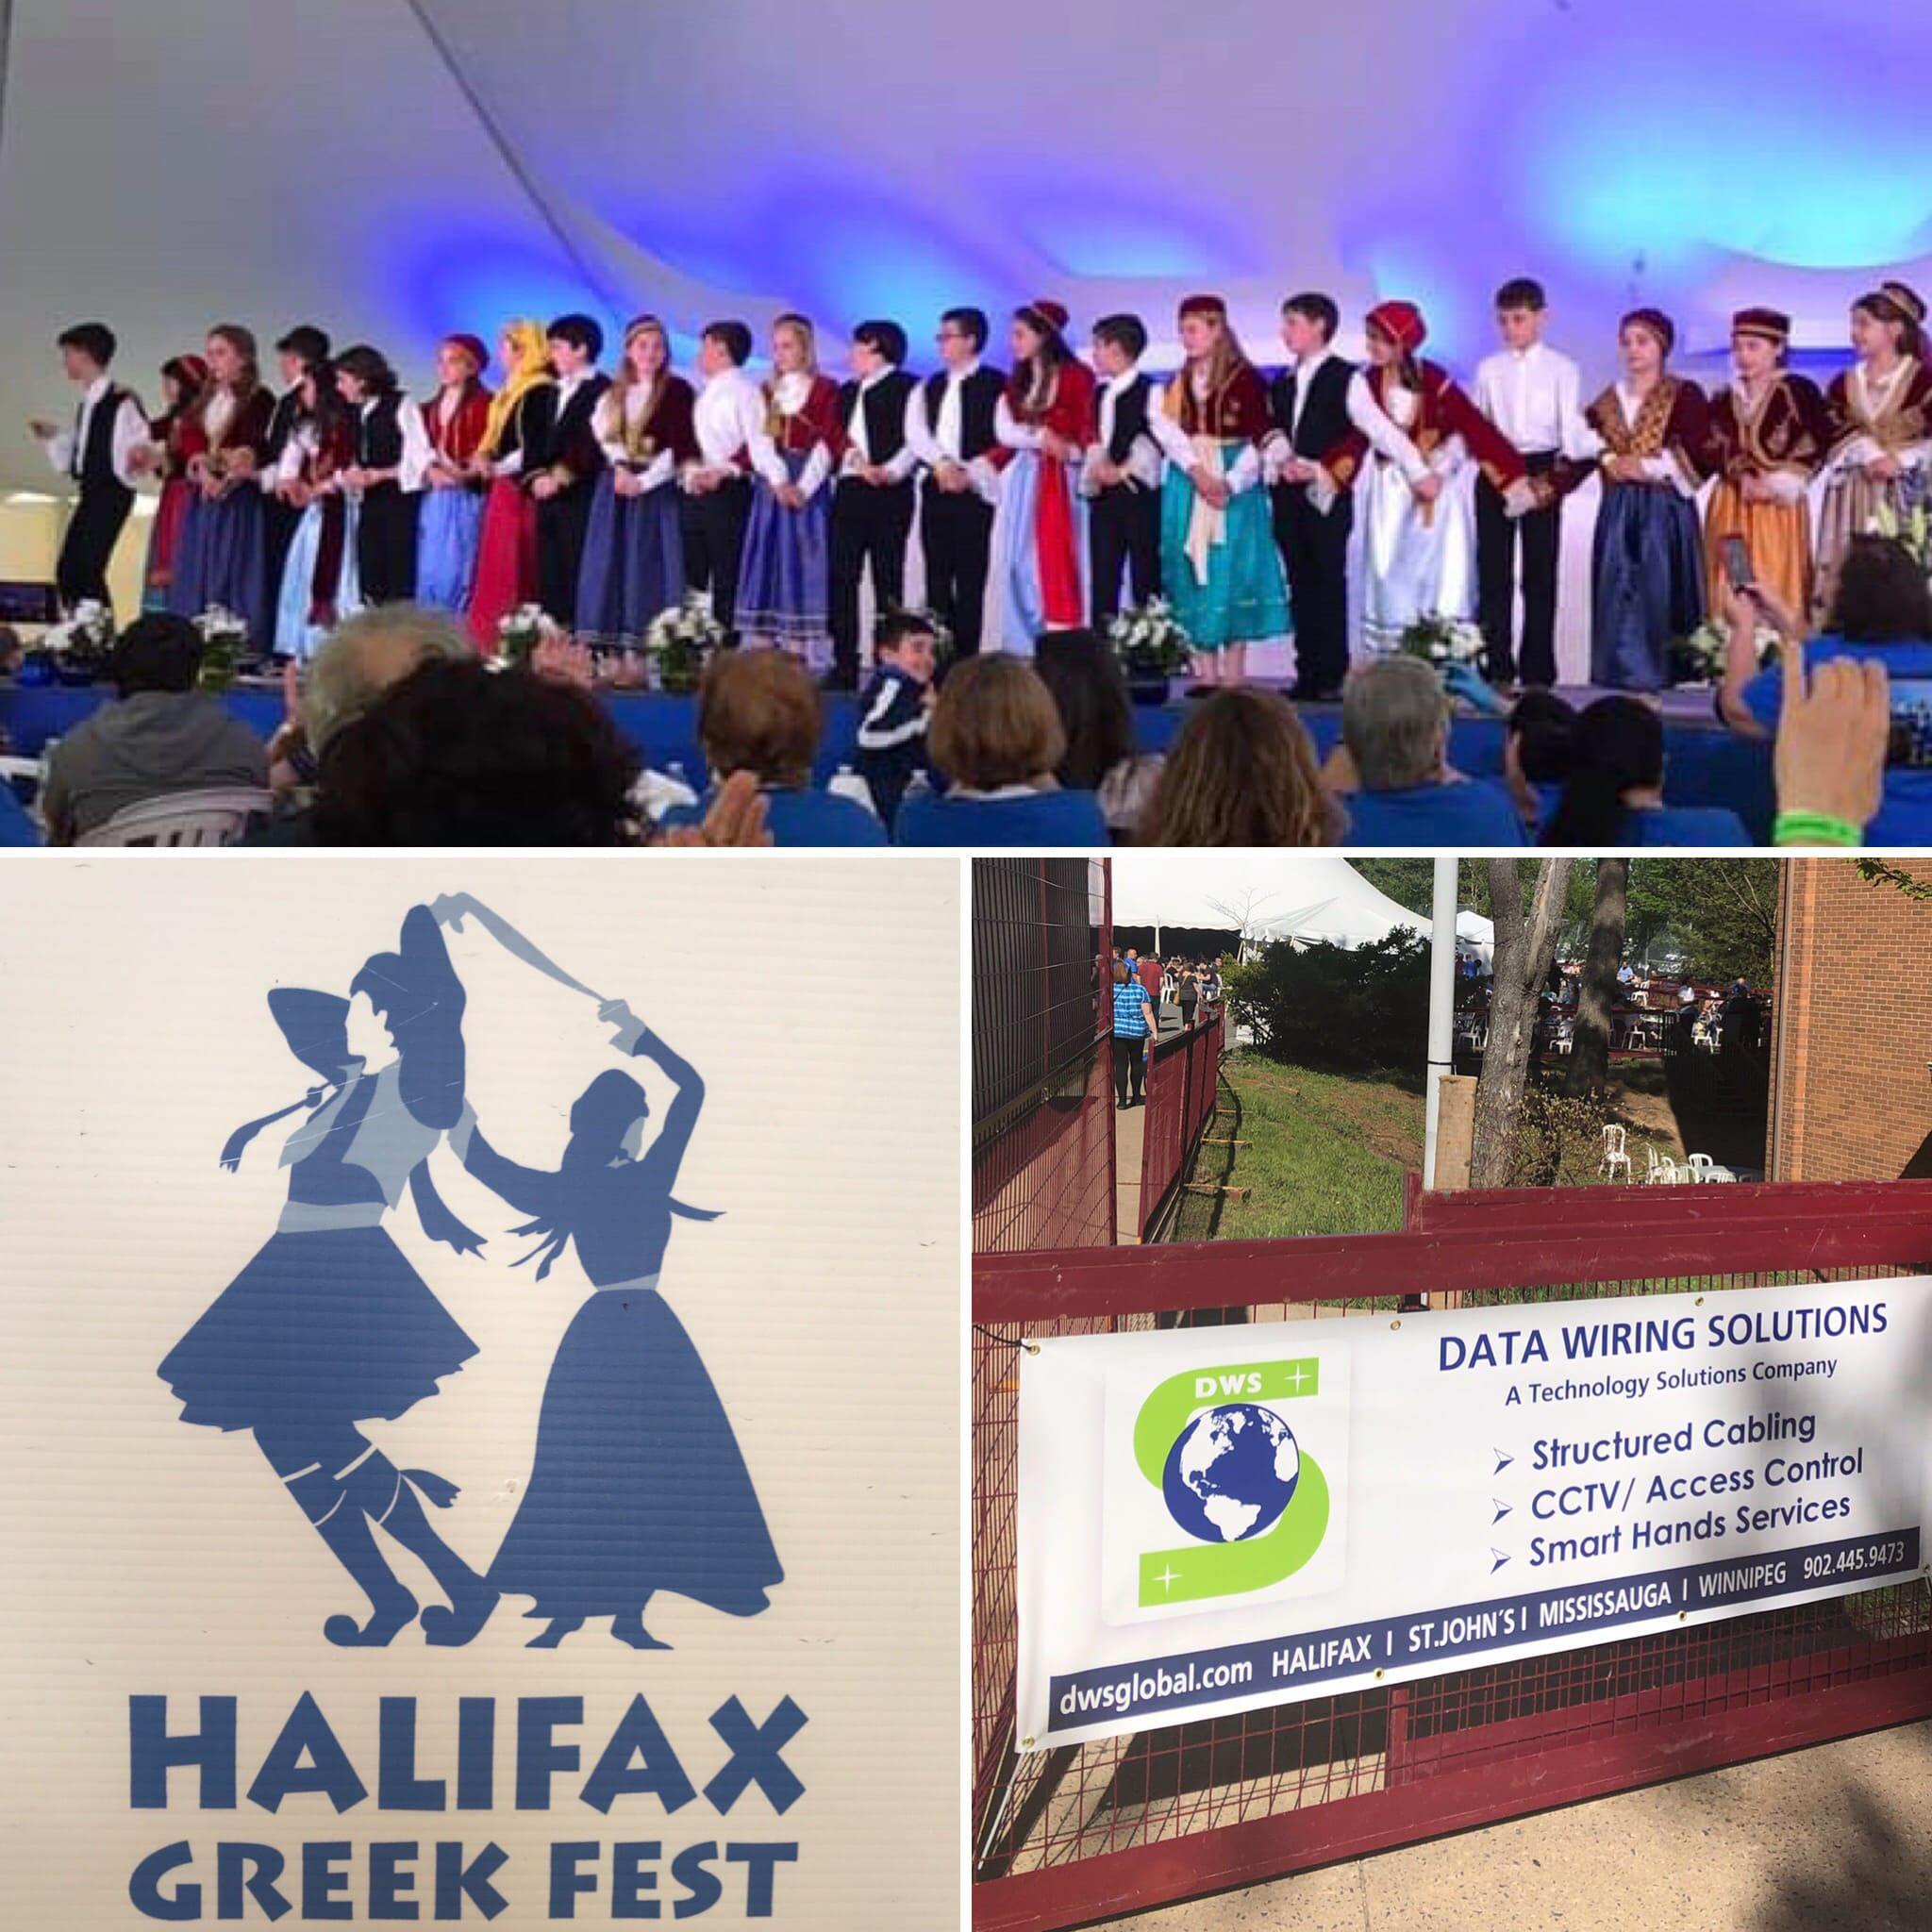 Supporting The 2019 Halifax Greek Fest!!